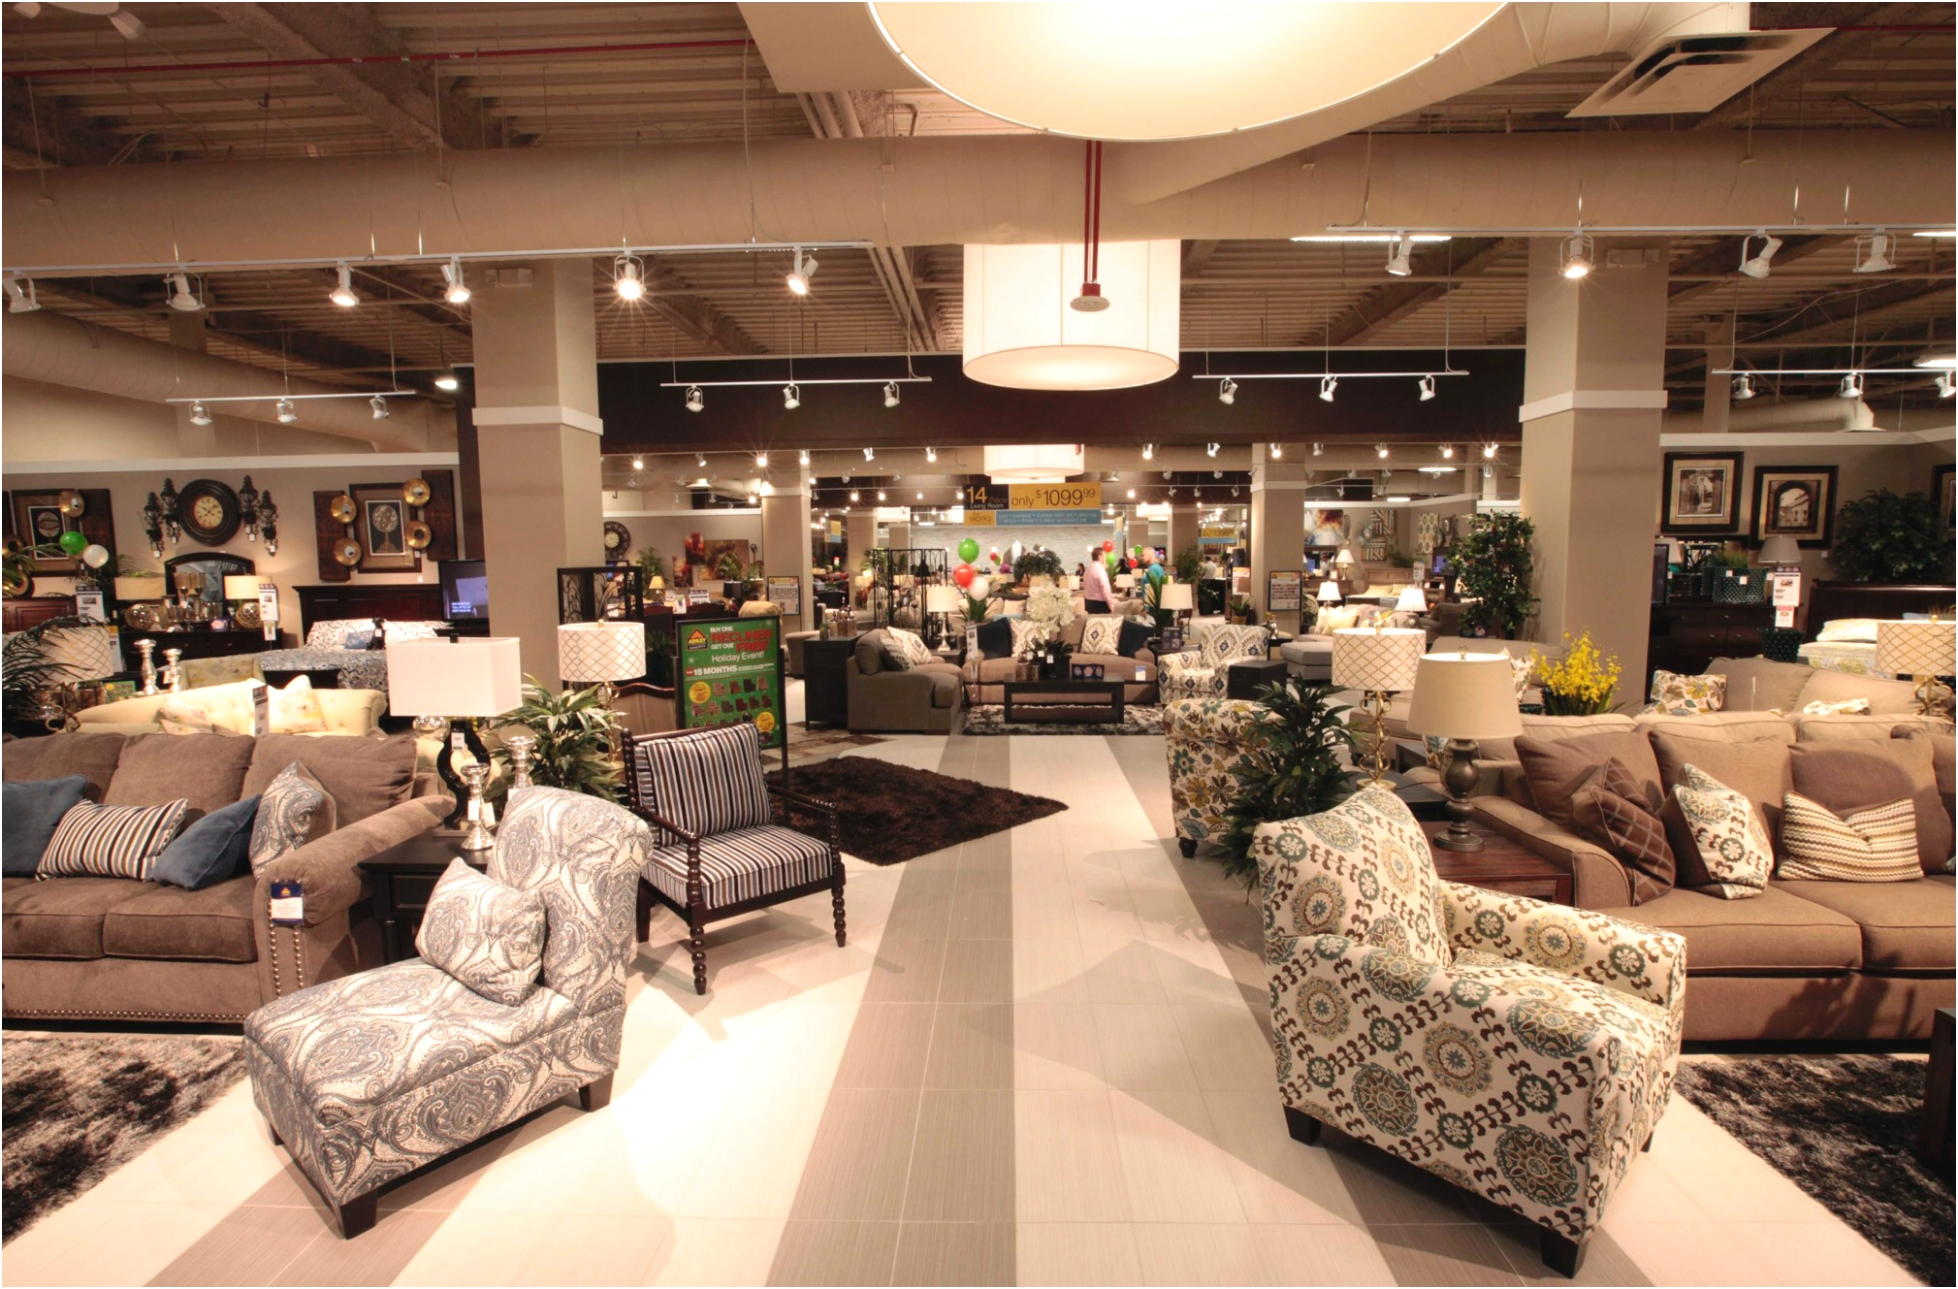 Furniture Stores Lawton Ok Elegant Furniture Stores Lawton Ok